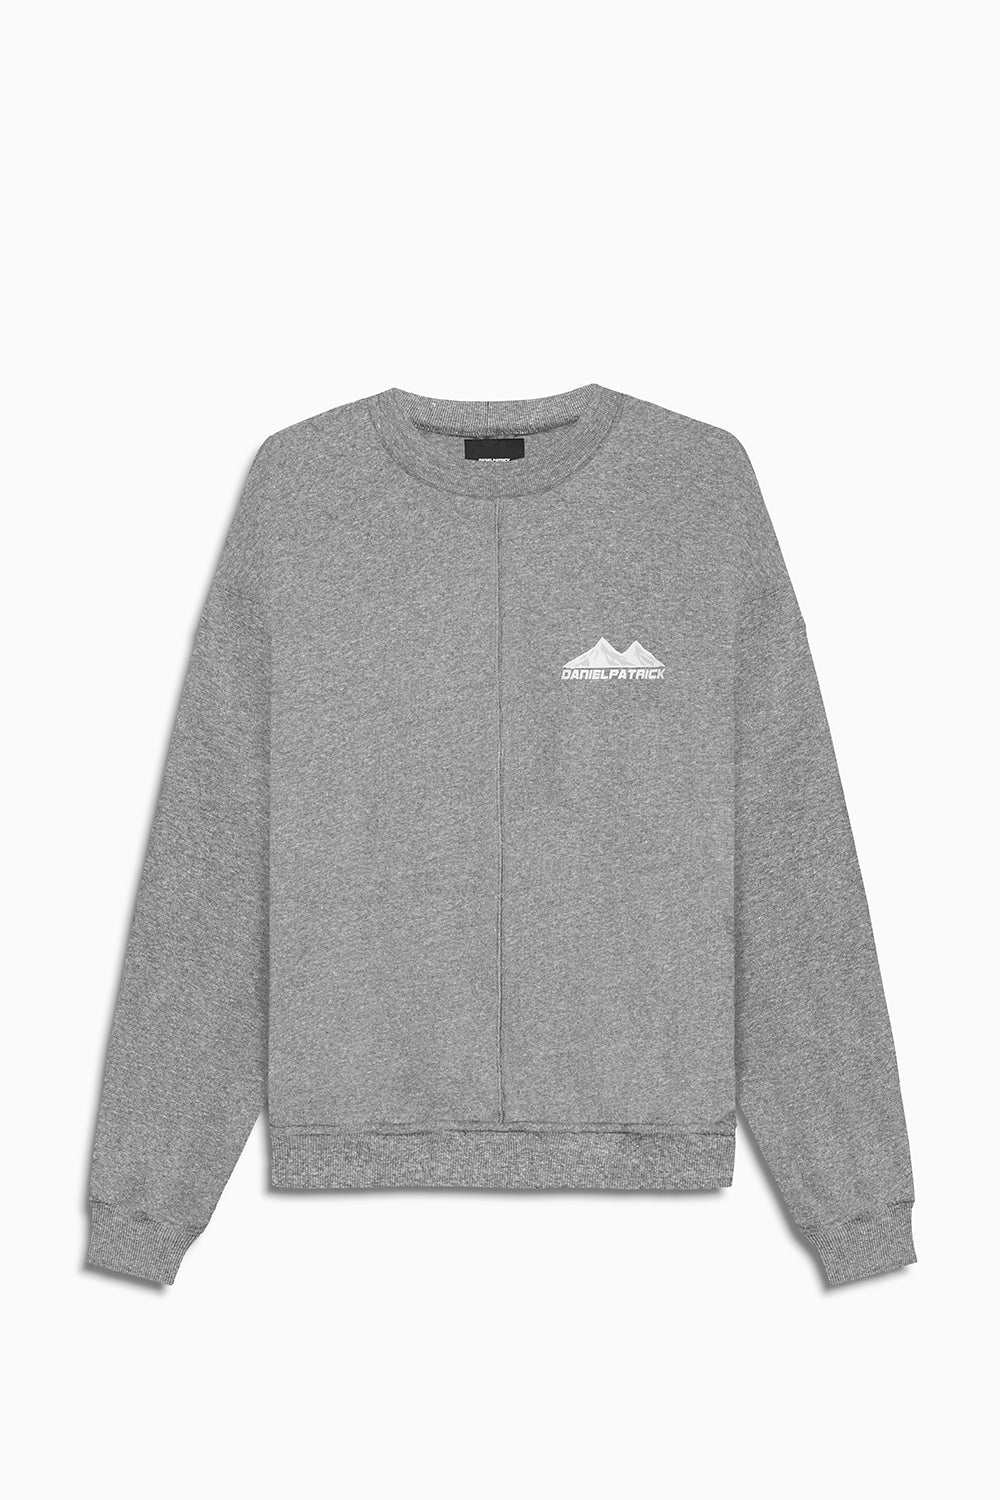 moving mountains crew neck sweat in heather grey by daniel patrick